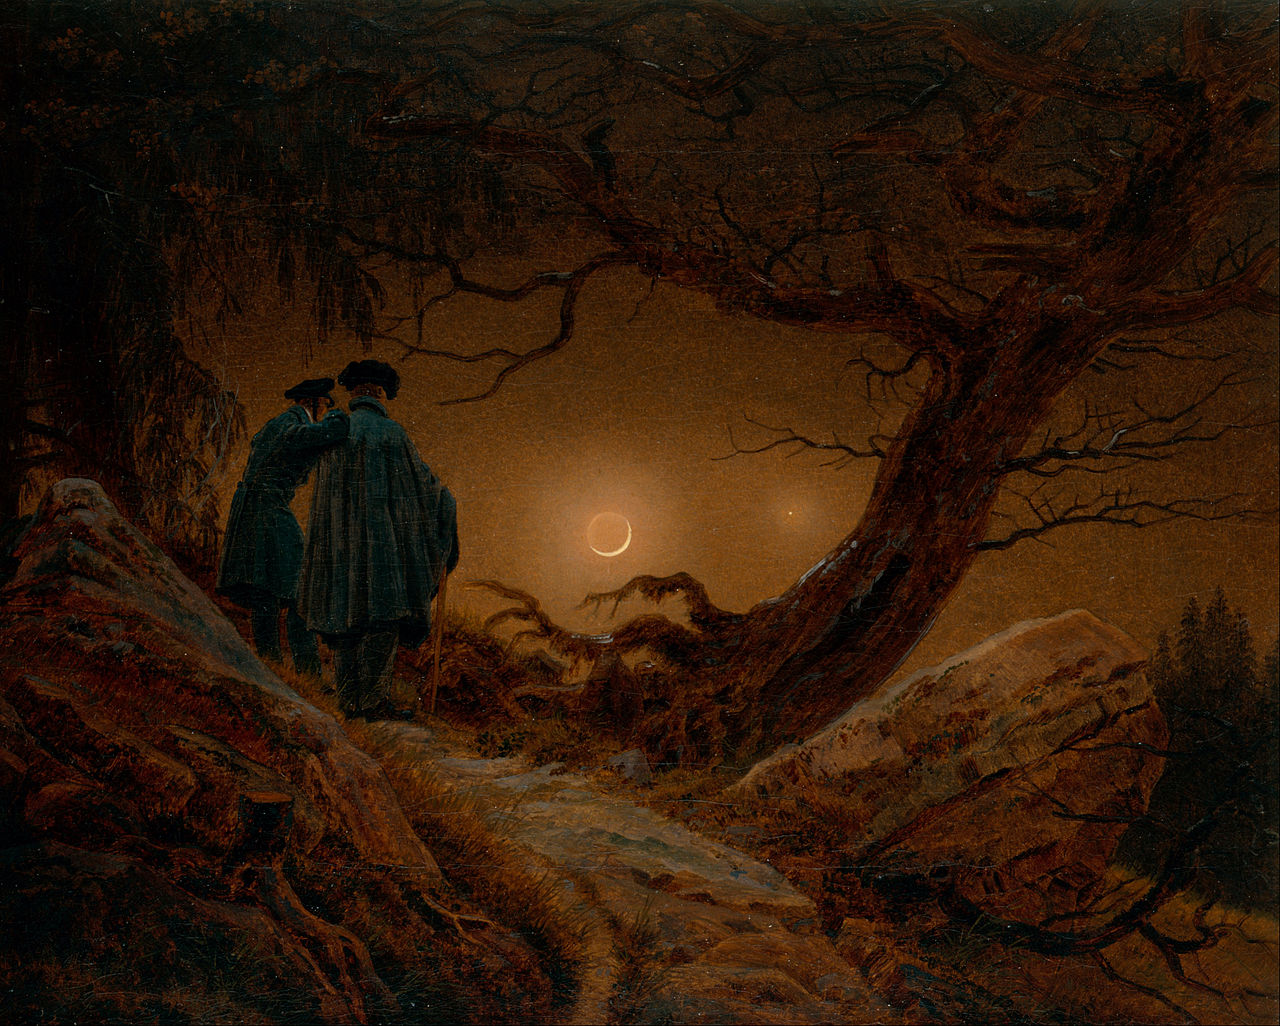 Caspar_David_Friedrich_-_Two_Men_Contemplating_the_Moon_-_Google_Art_Project.jpg.797aa2f05a25c11fc10fef2486f6fb44.jpg